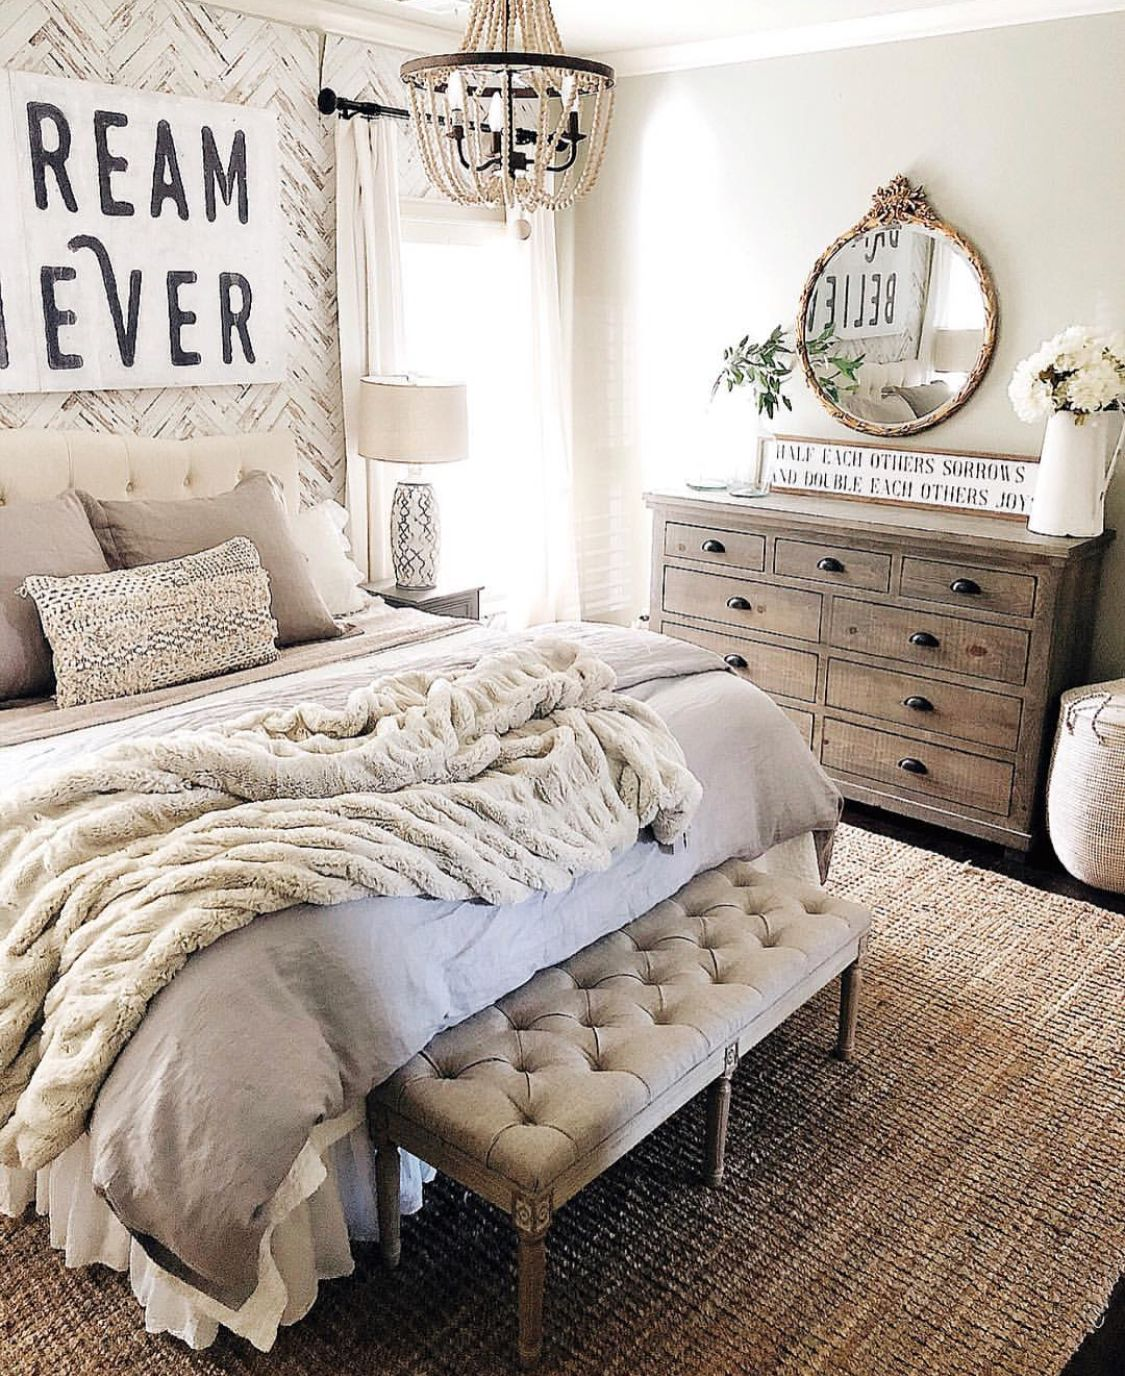 Pin By Shelby Gaskey On Master Suite Romantic Bedroom Decor Interior Design Bedroom Small Cozy Master Bedroom